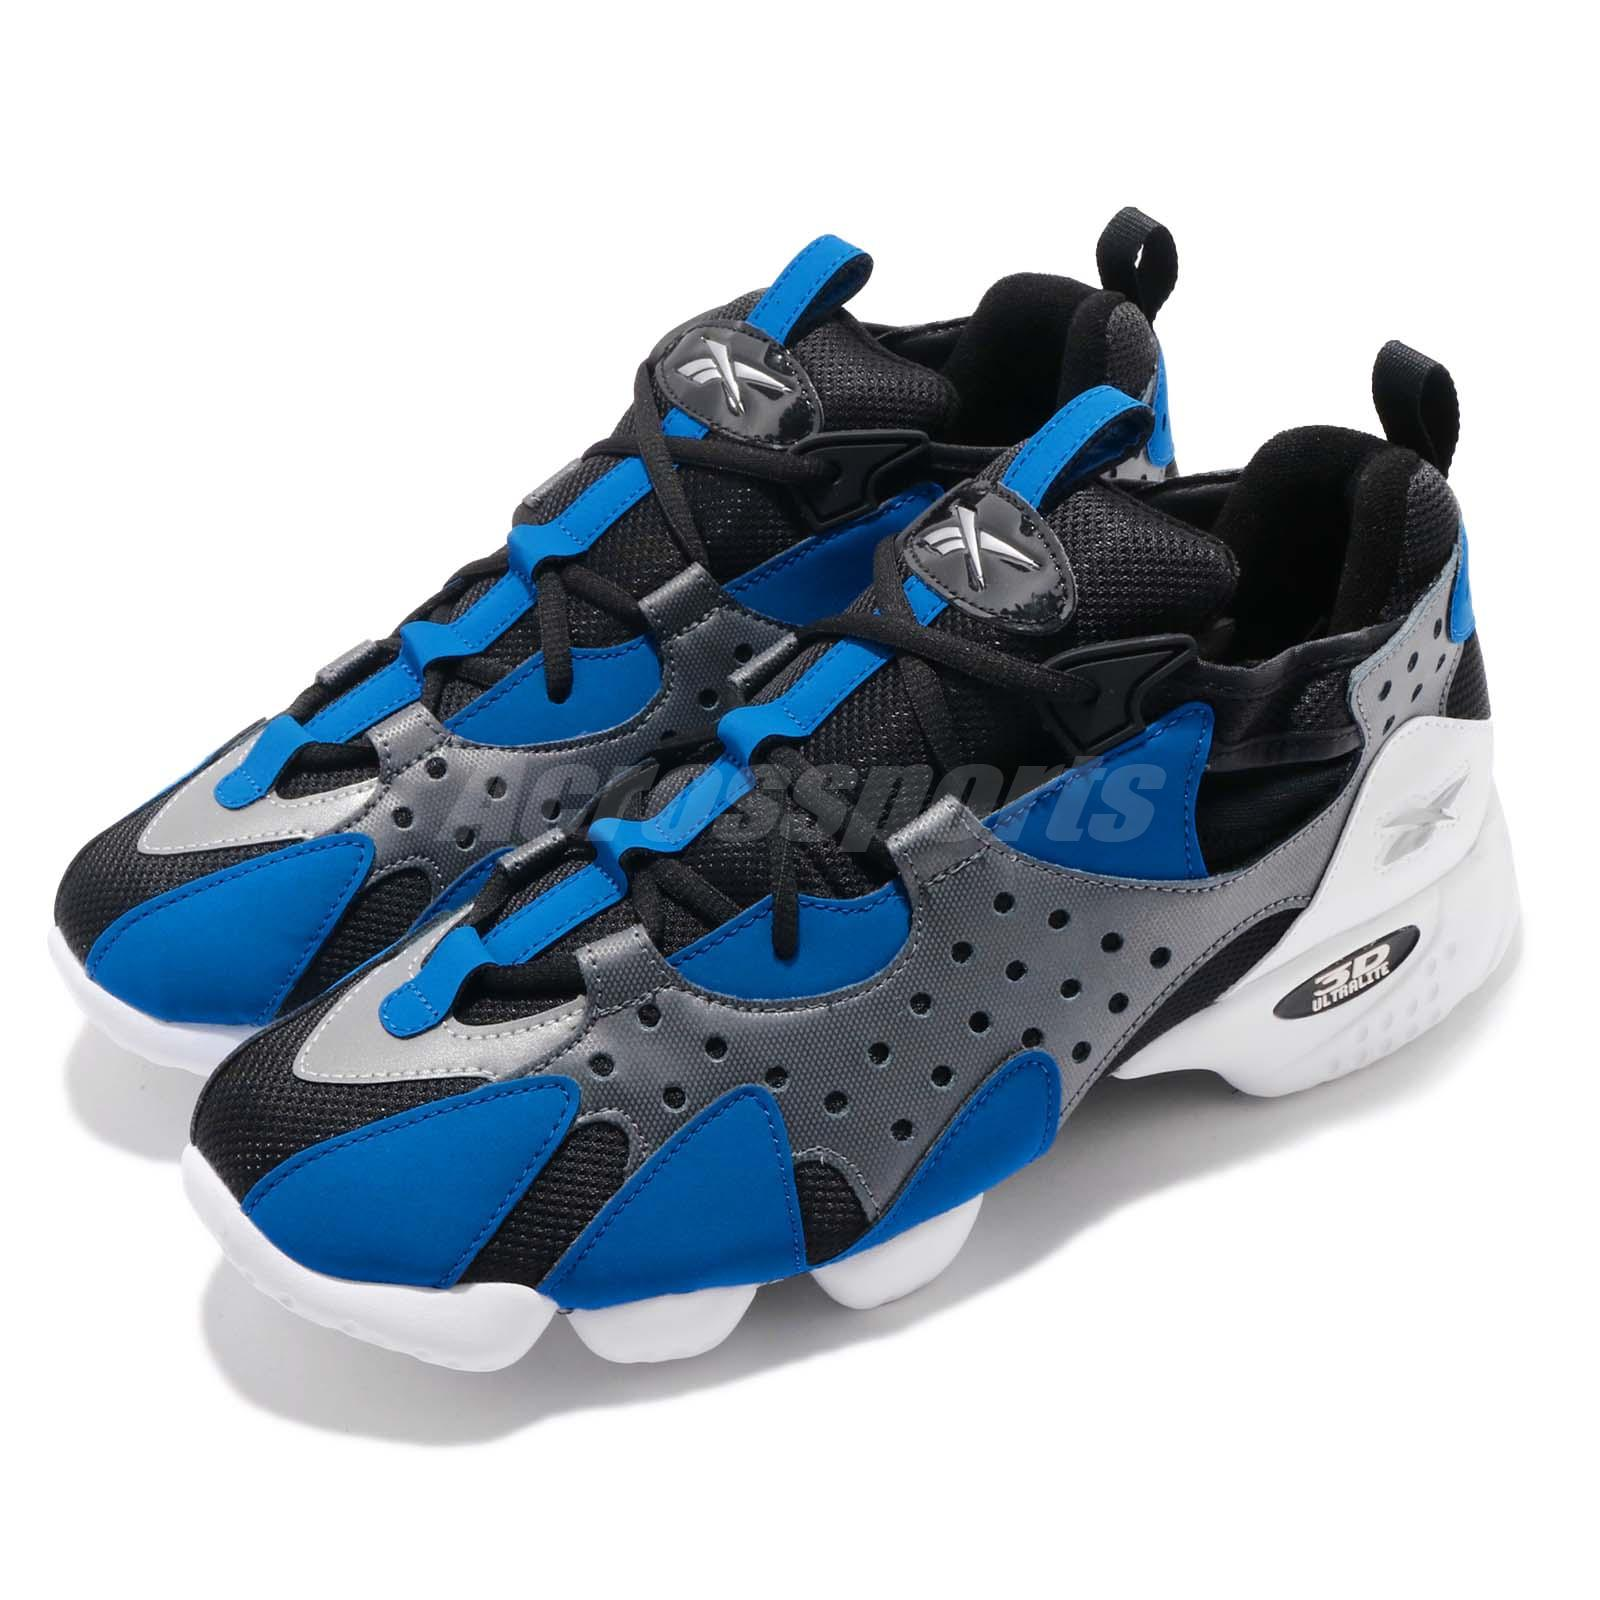 Reebok 3d Op 98 Retro Black Grey Blue White Men Running Shoes